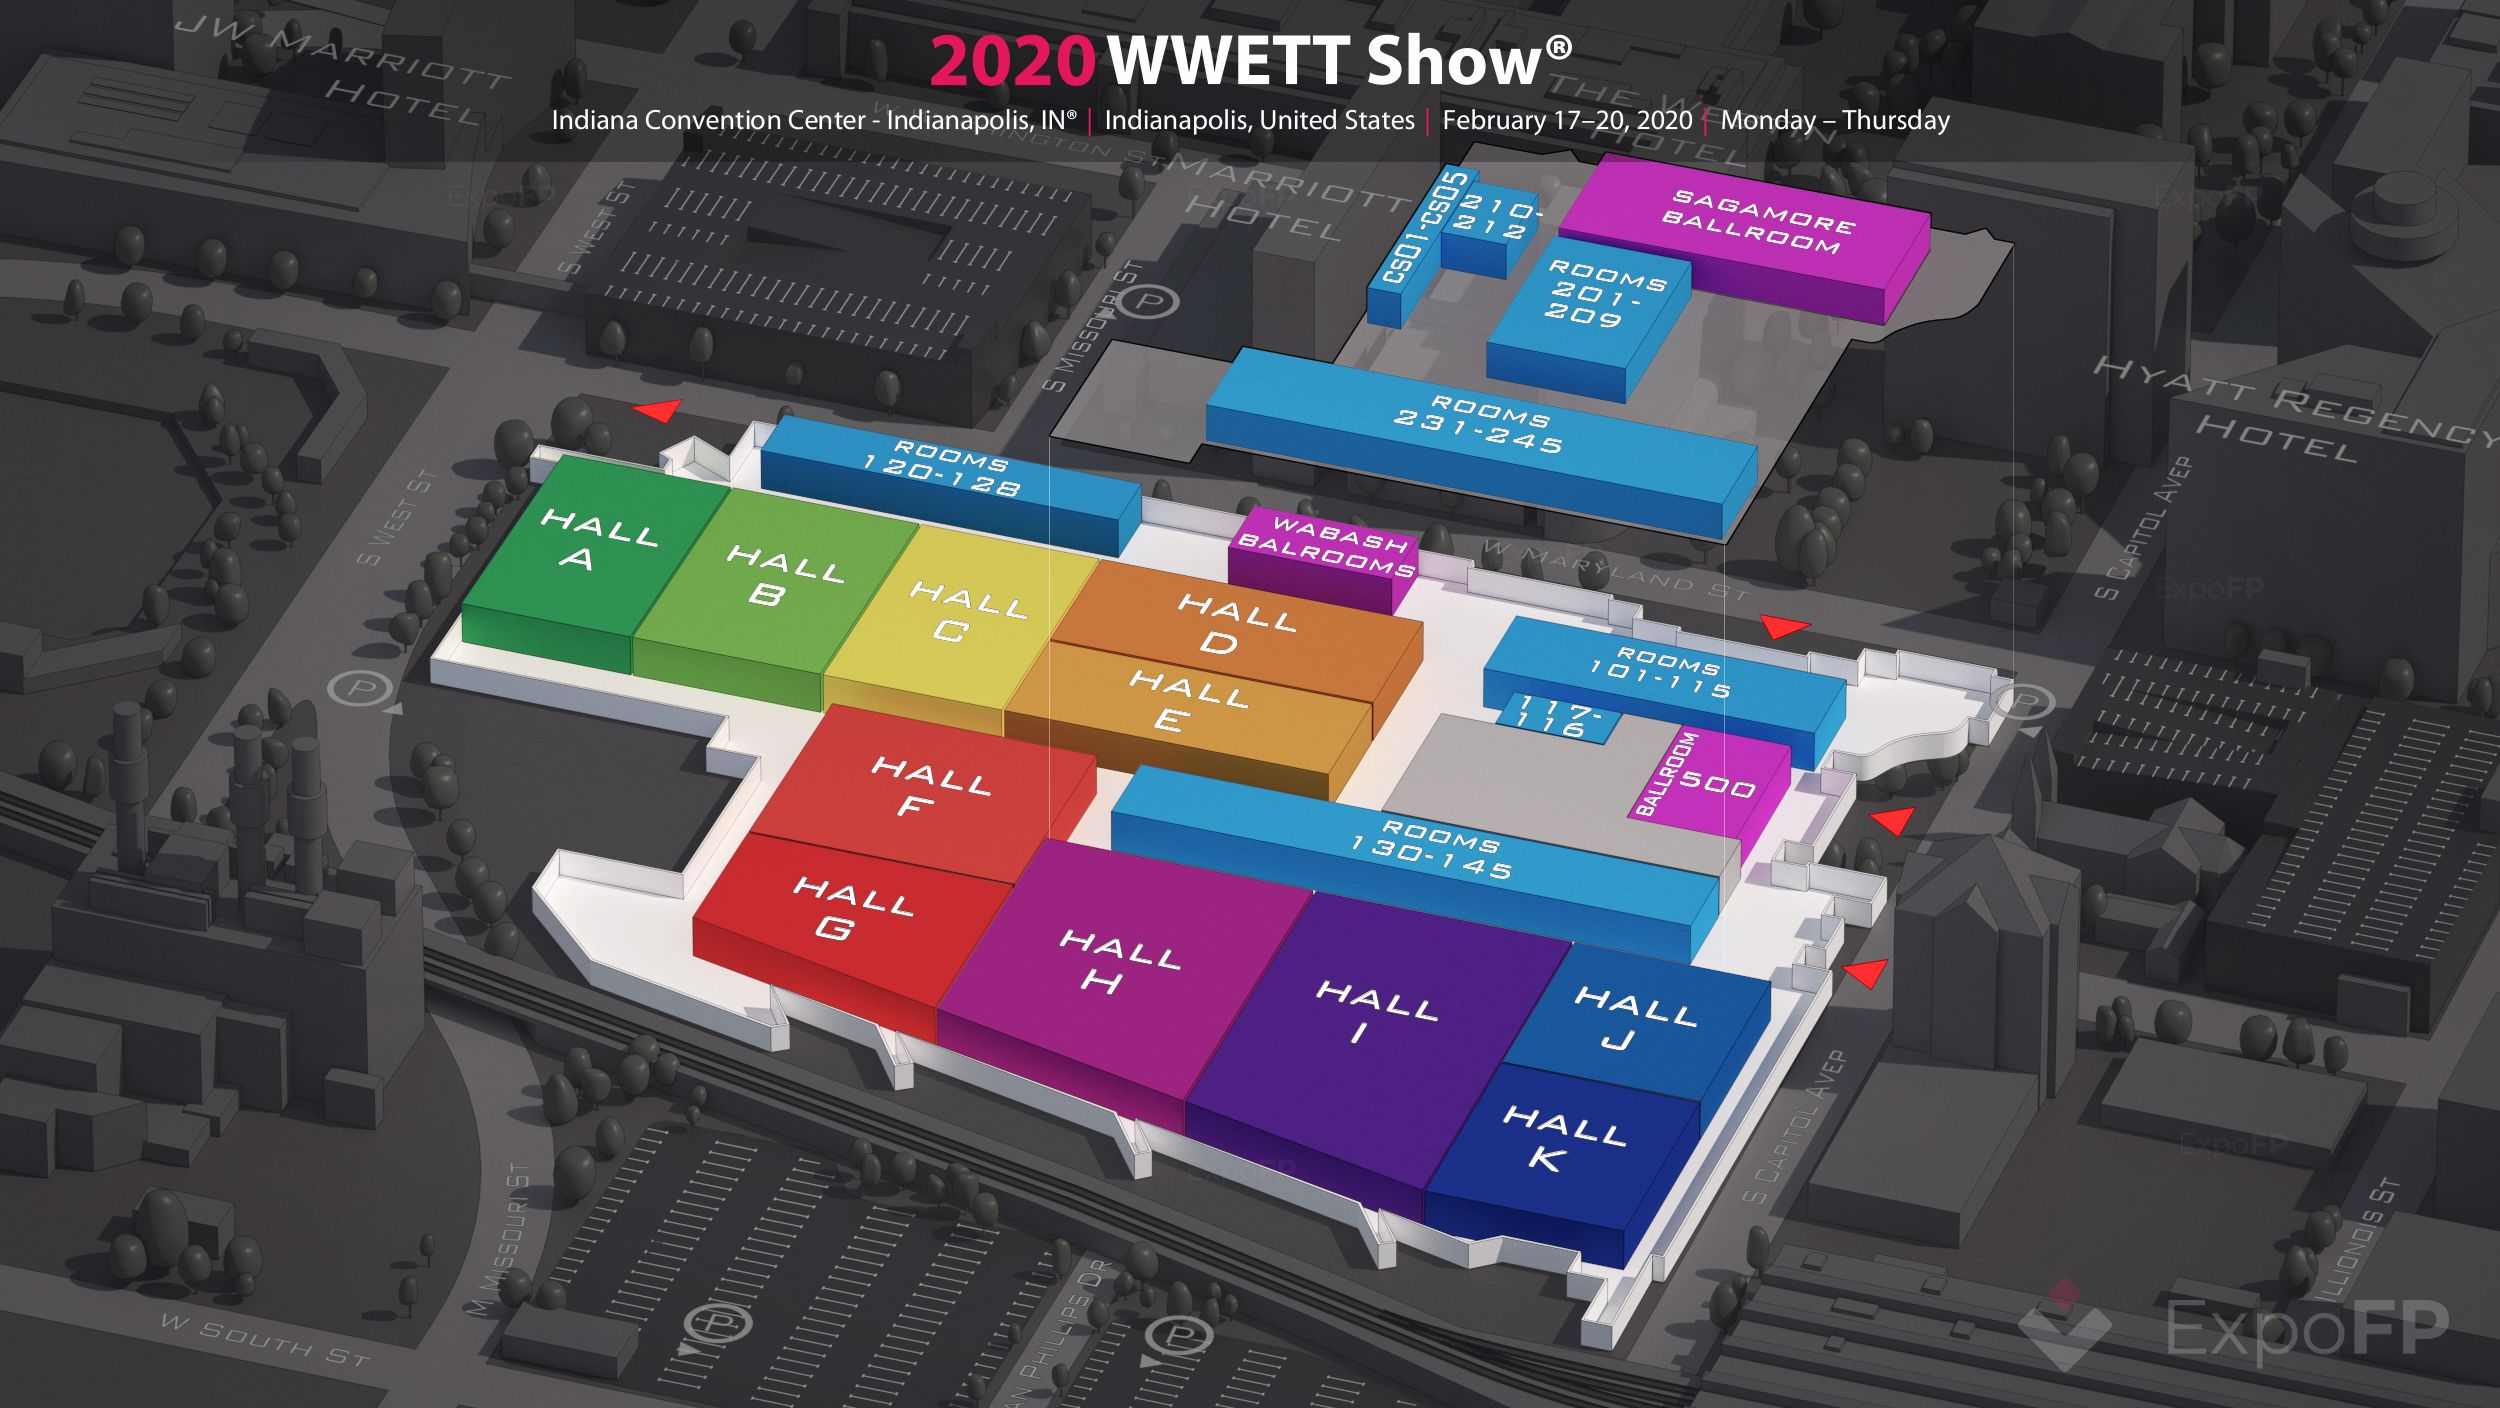 Indianapolis Home Show 2020.Wwett Show 2020 In Indiana Convention Center